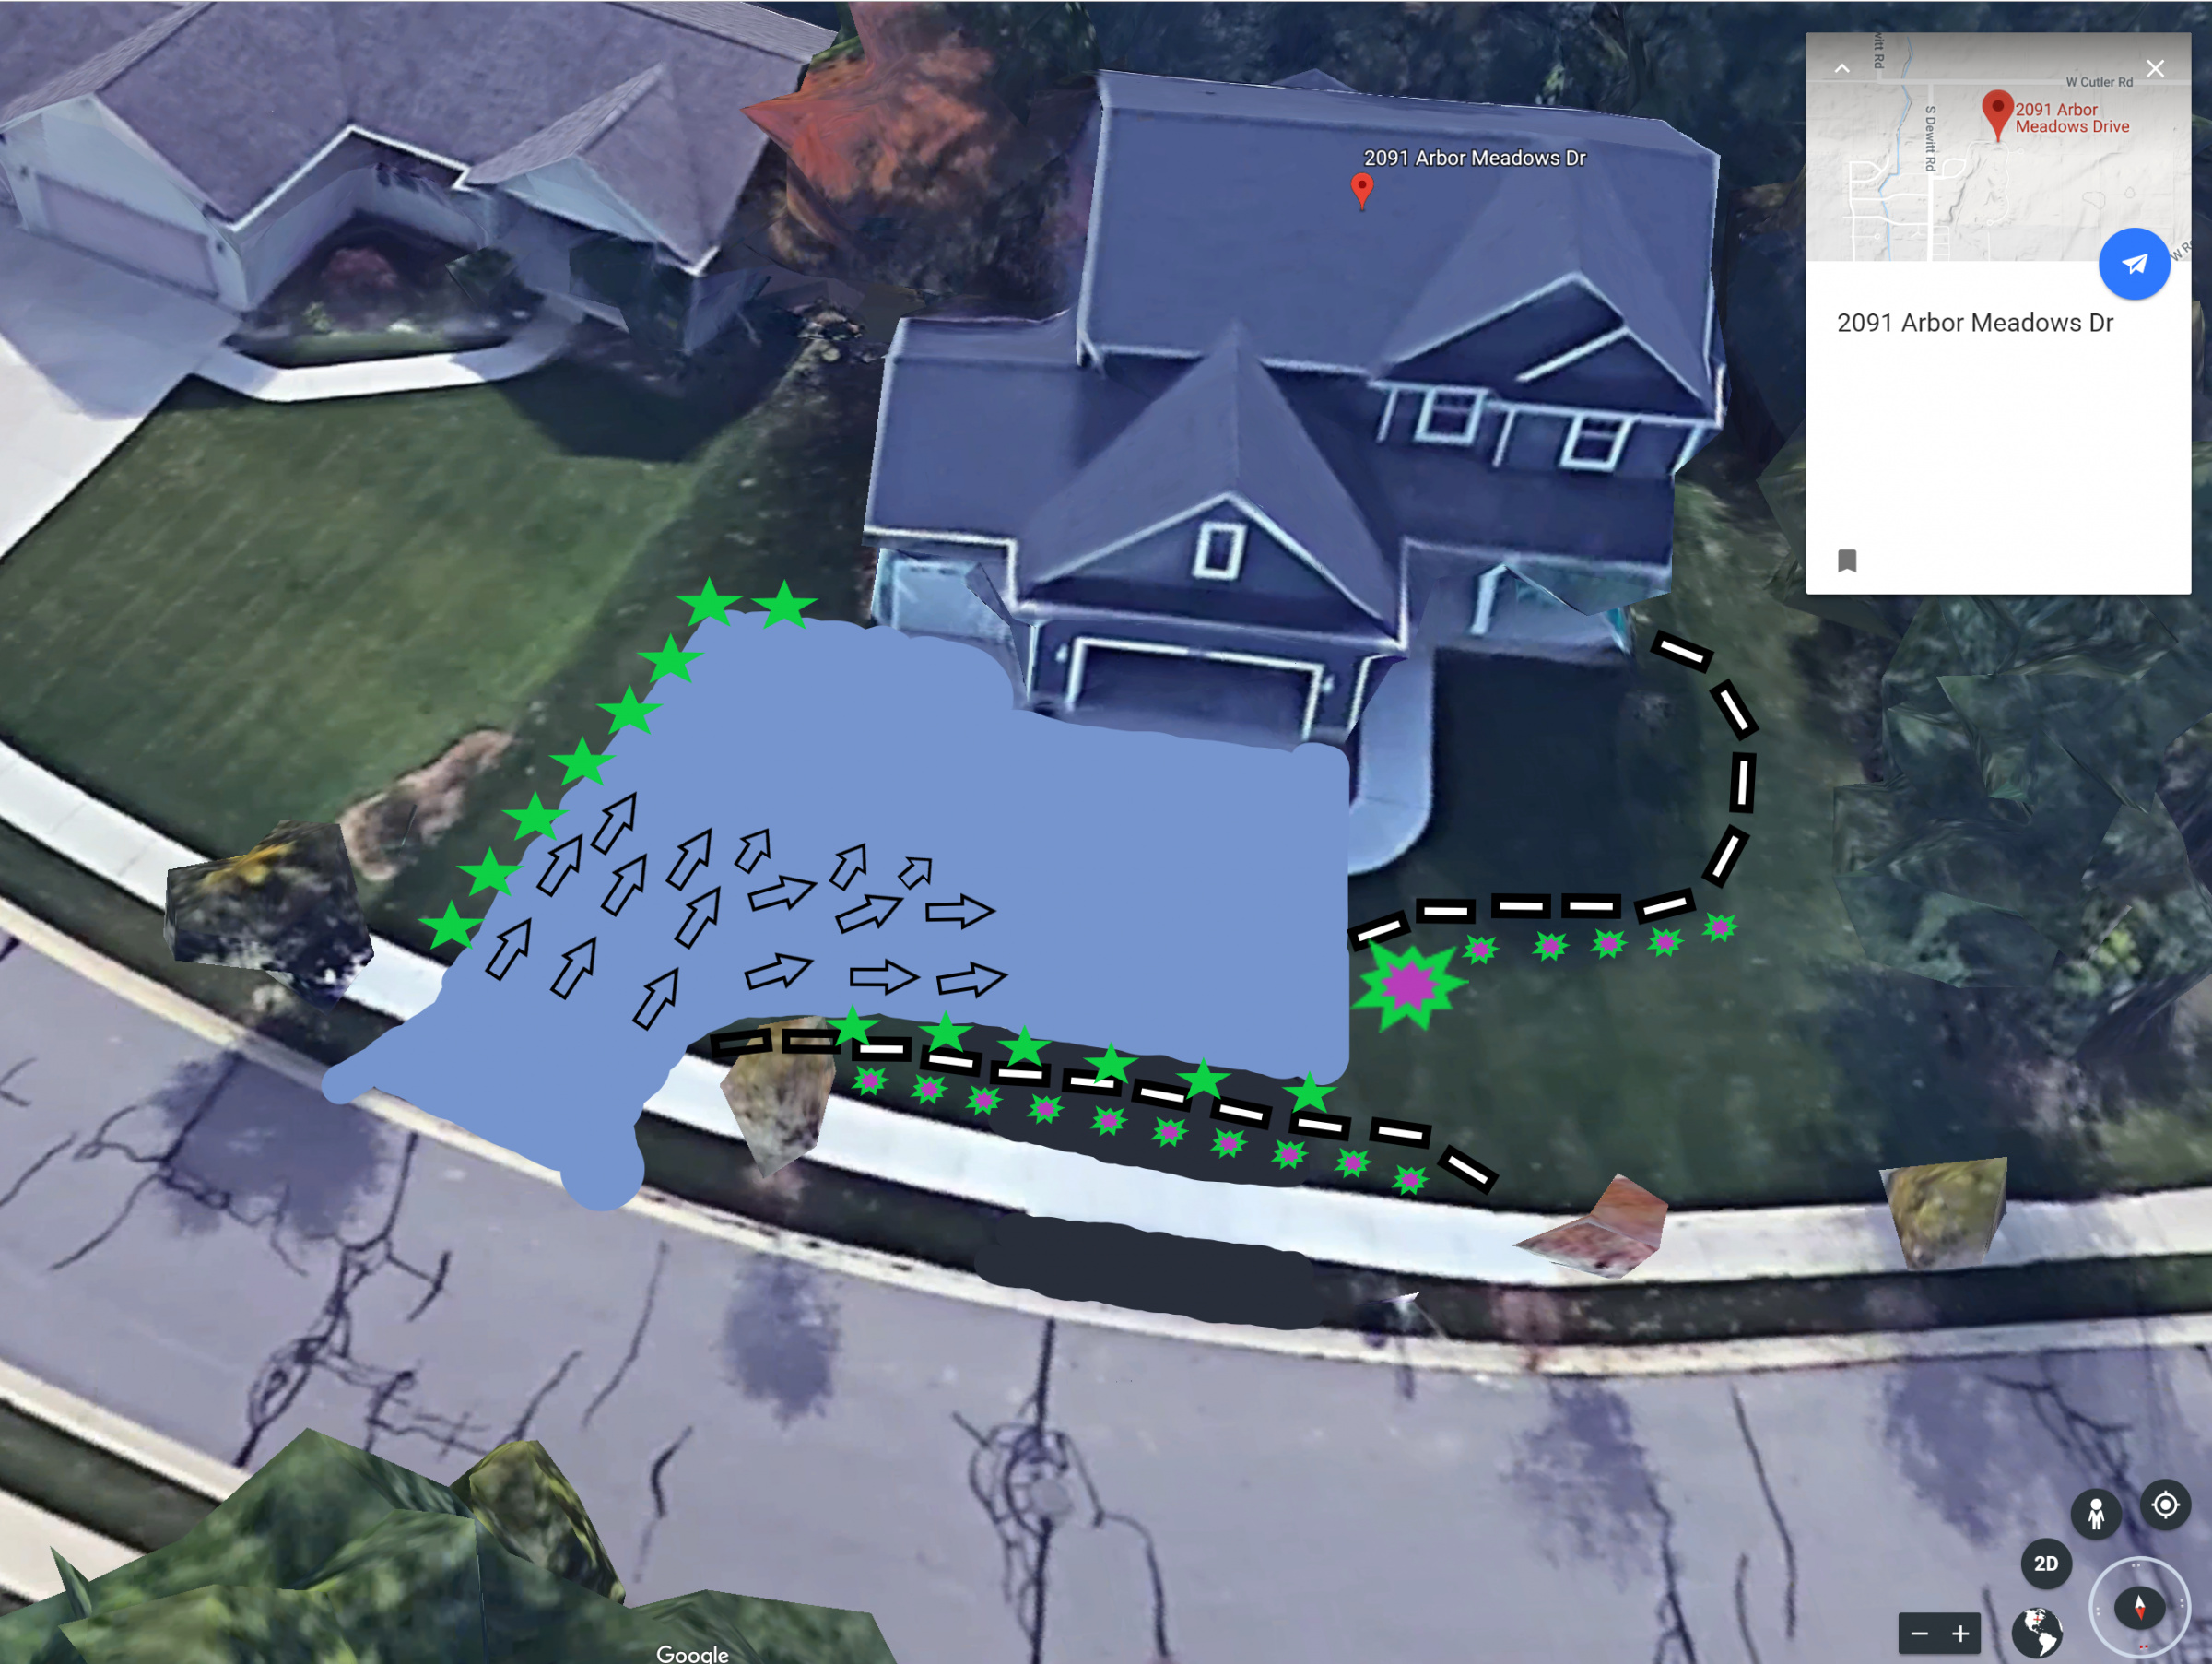 Reconstructing Driveway to Create Flat Area-front-view-google-earth-.jpg